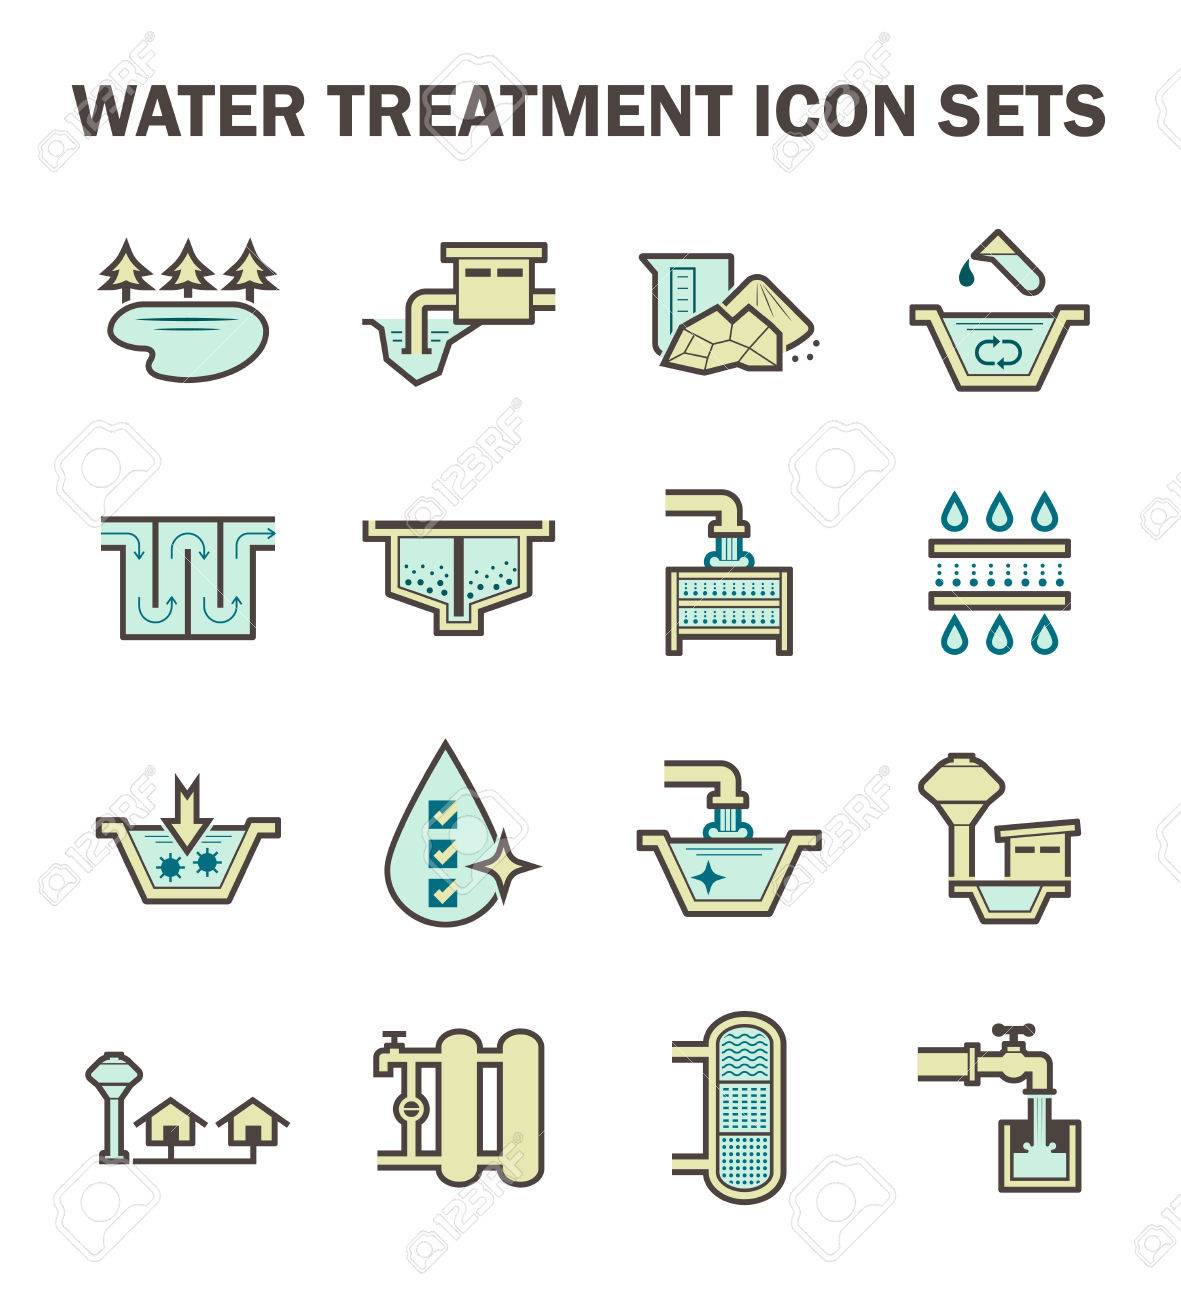 Water treatment and water supply icon set design. - 60305099